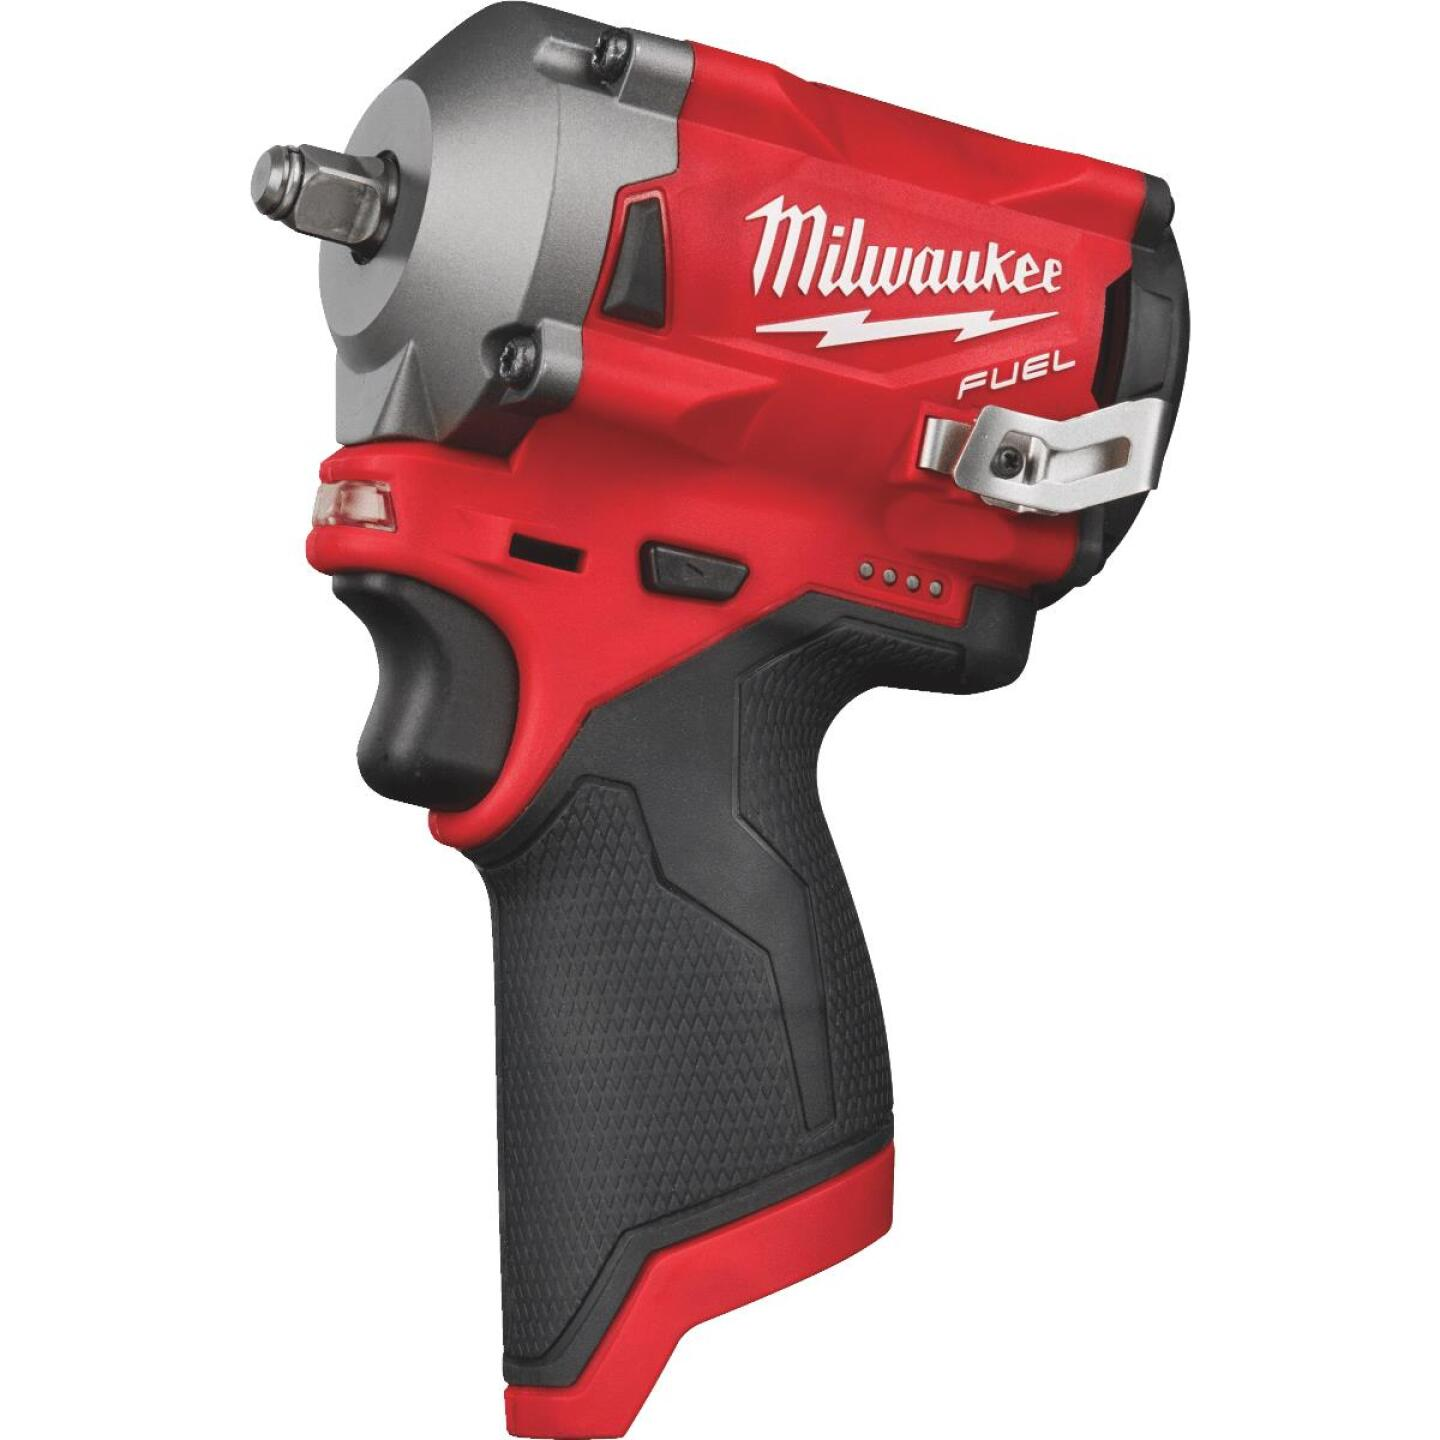 Milwaukee M12 FUEL 12 Volt Lithium-Ion Brushless 3/8 In. Stubby Cordless Impact Wrench Kit Image 4